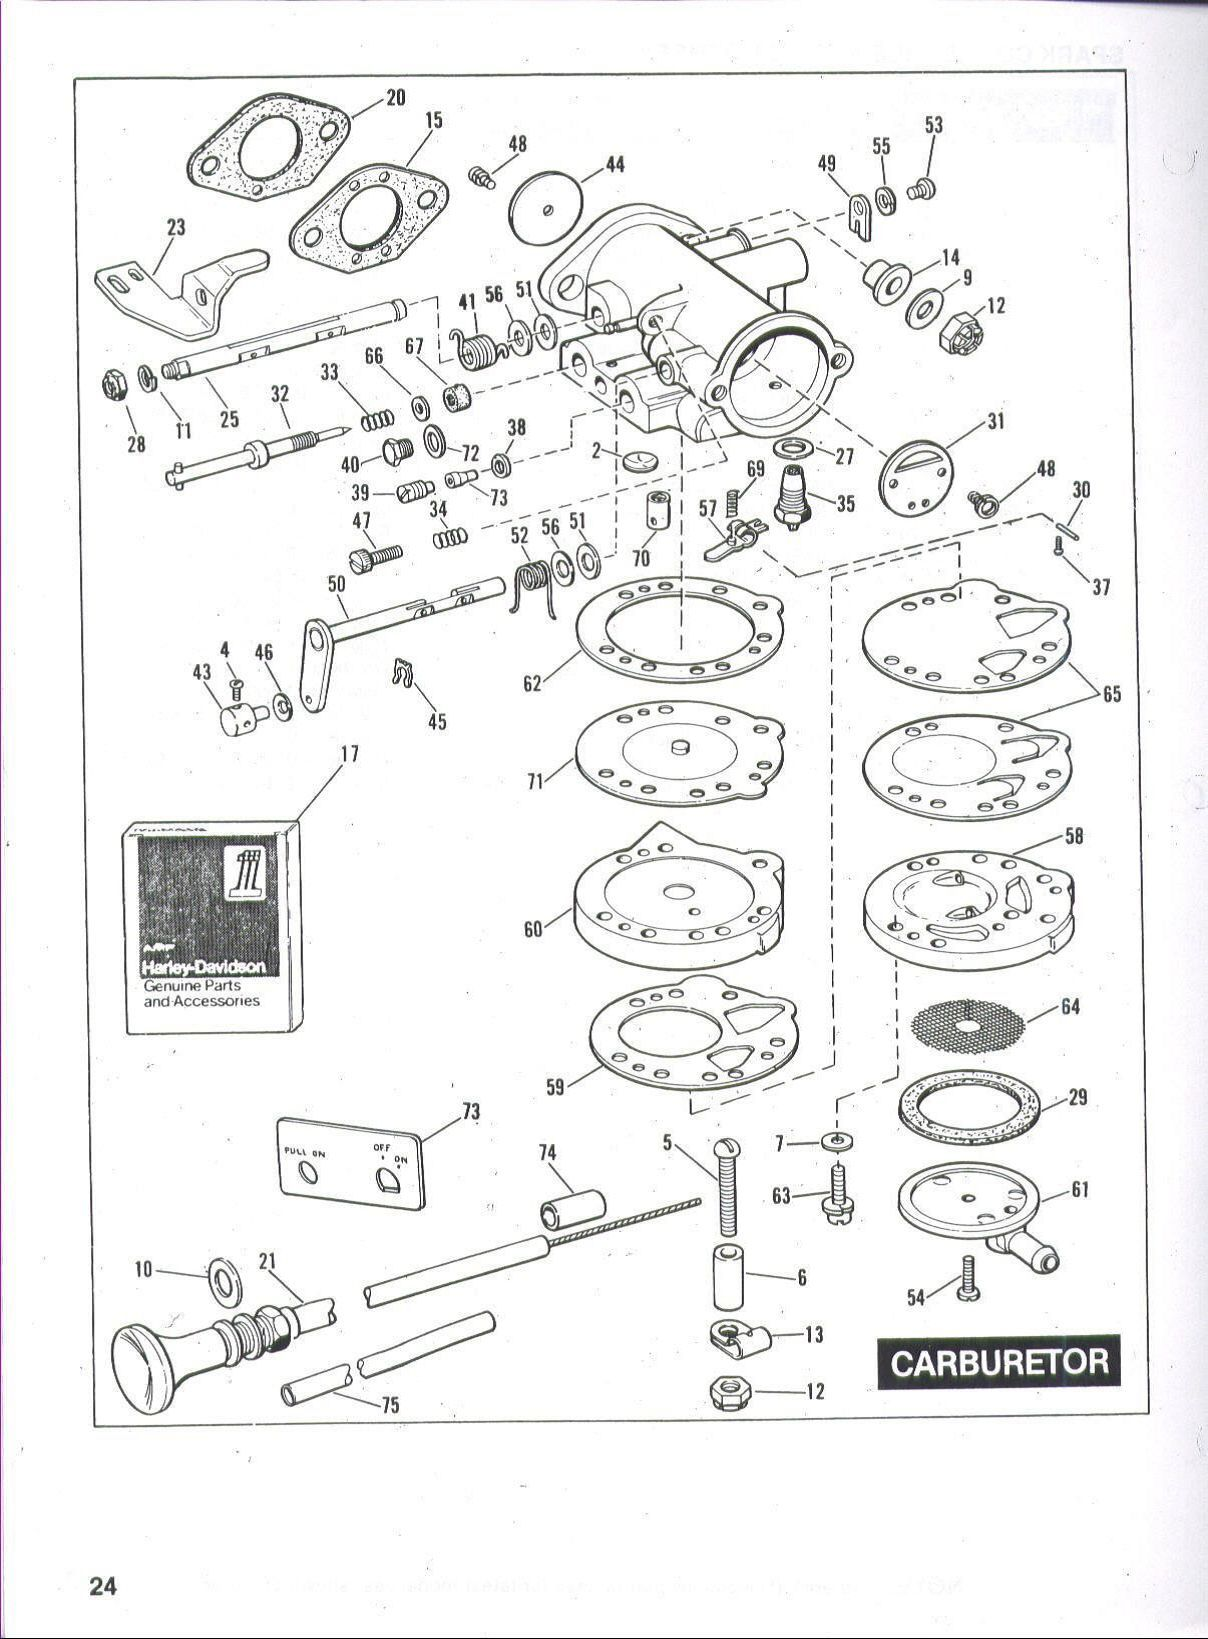 small resolution of harley davidson golf cart carburetor diagram